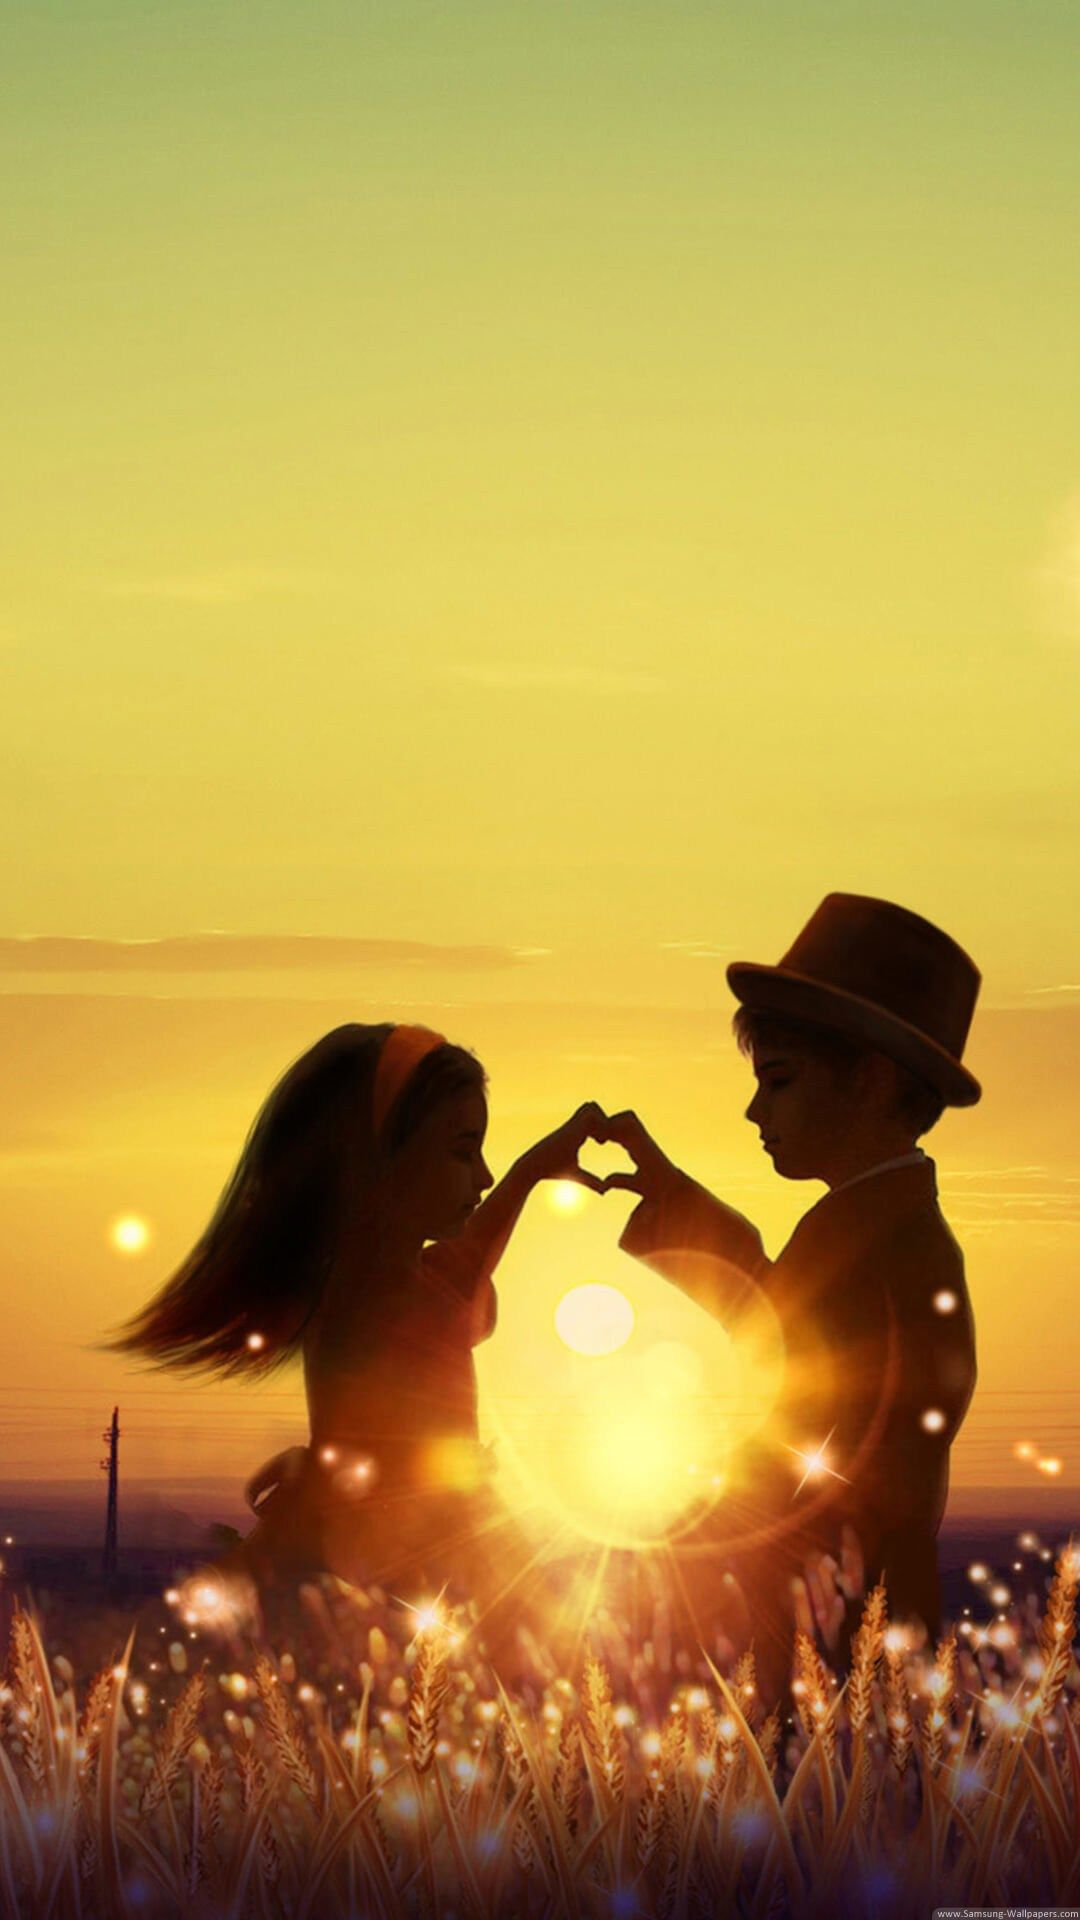 Cute Love For Mobile Phones Wallpapers Photo Is 4k Wallpaper Love Couple Wallpaper Cute Love Wallpapers Love Wallpaper Backgrounds